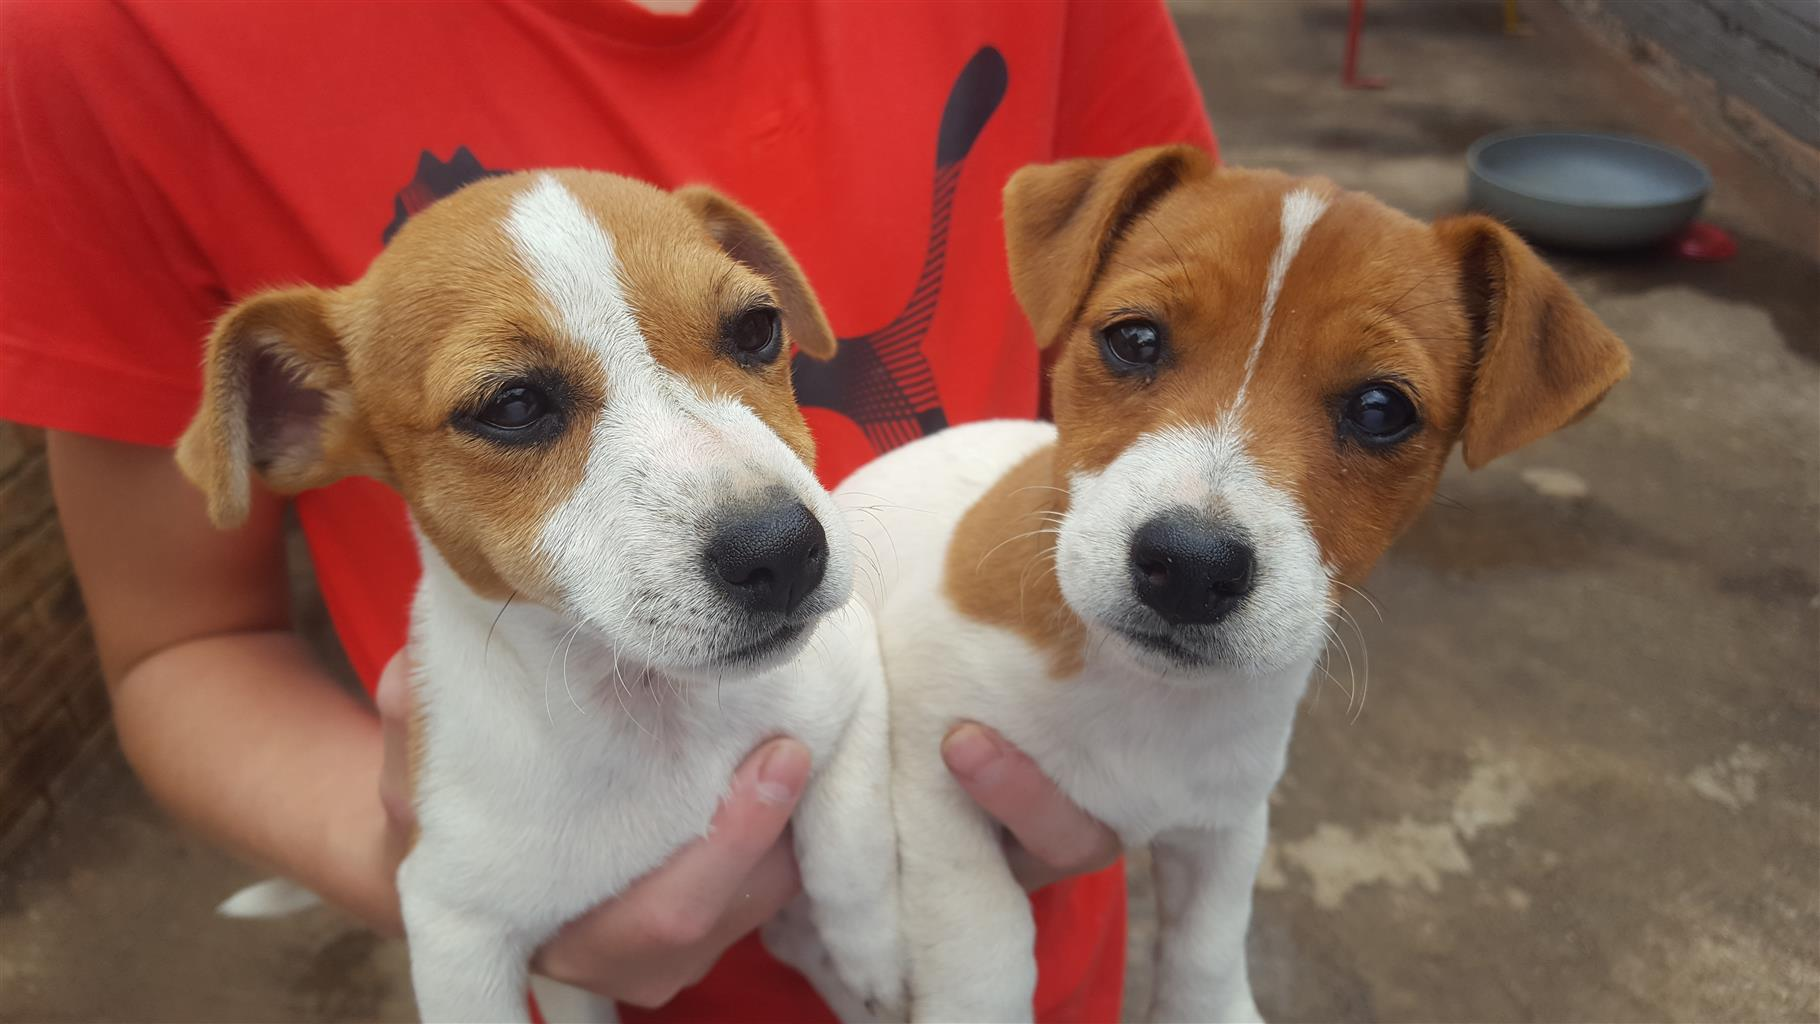 Jack russel / foxy Puppys for sale